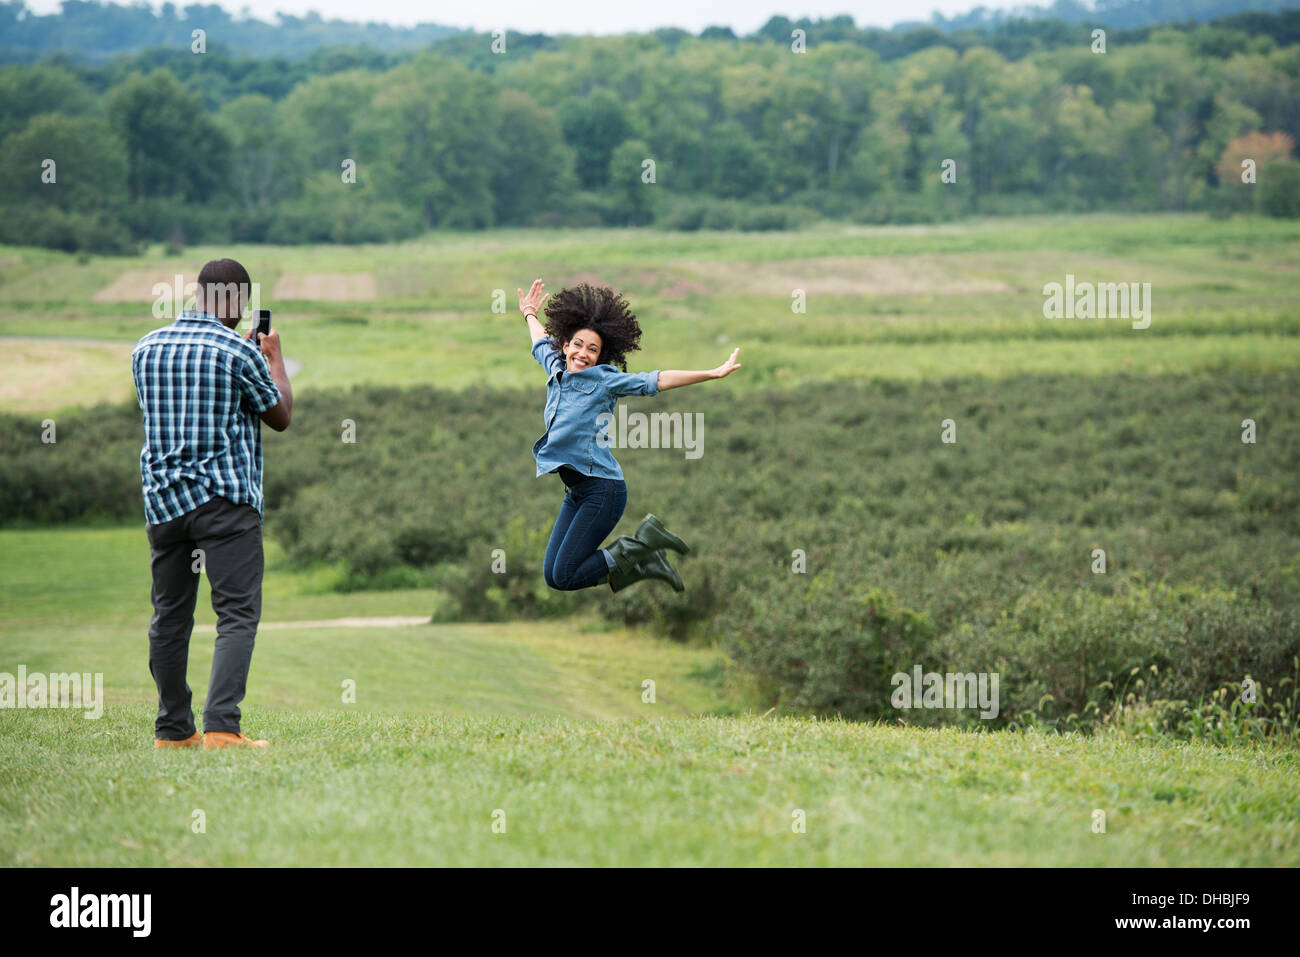 A man taking a photograph of a woman leaping in the air, jumping for joy with her arms outstretched. - Stock Image